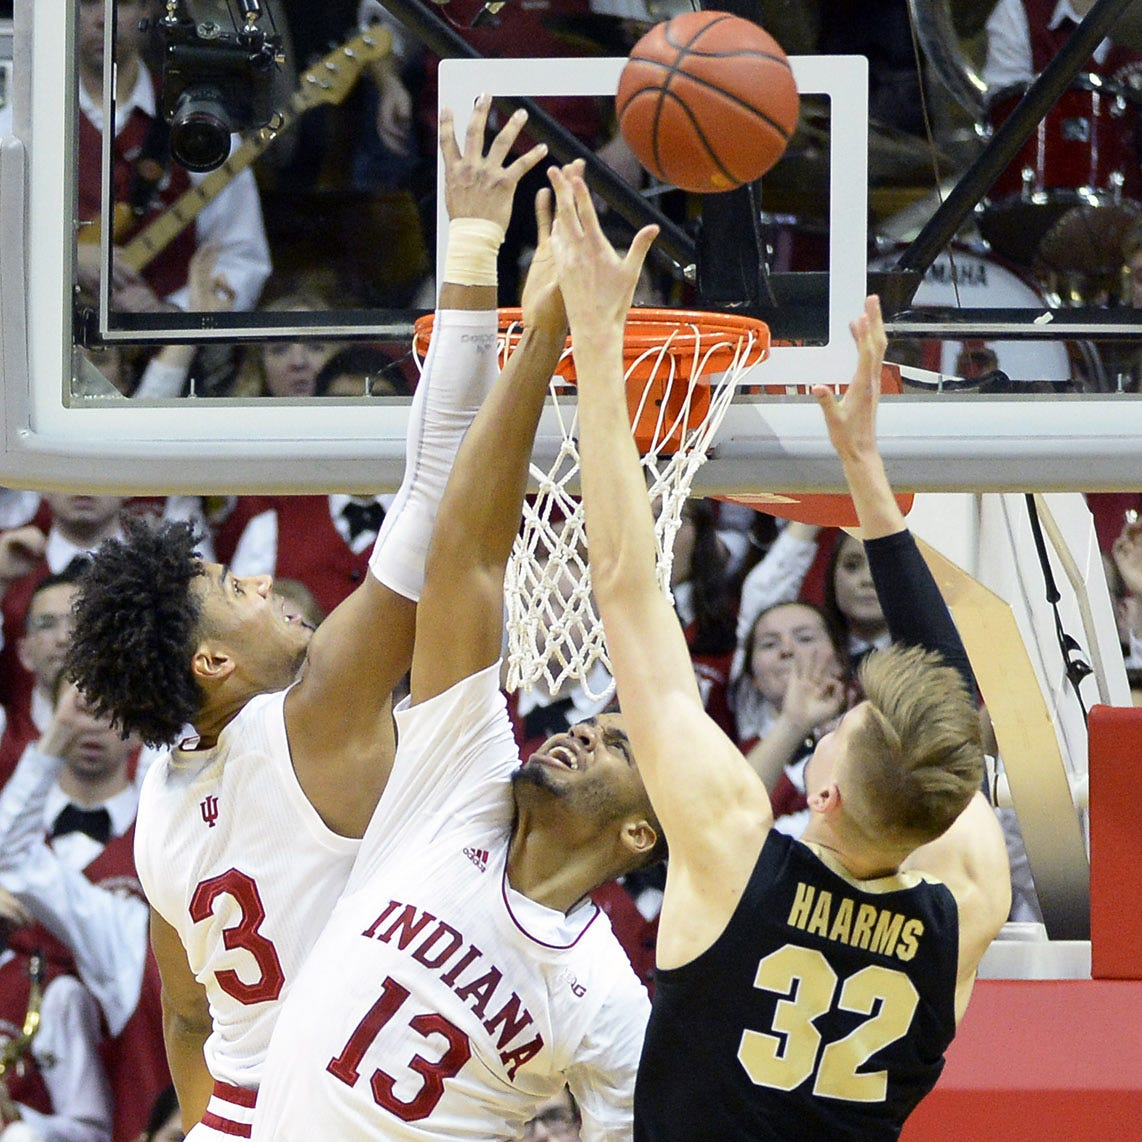 See Matt Haarms' game-winner as Purdue beat Indiana basketball